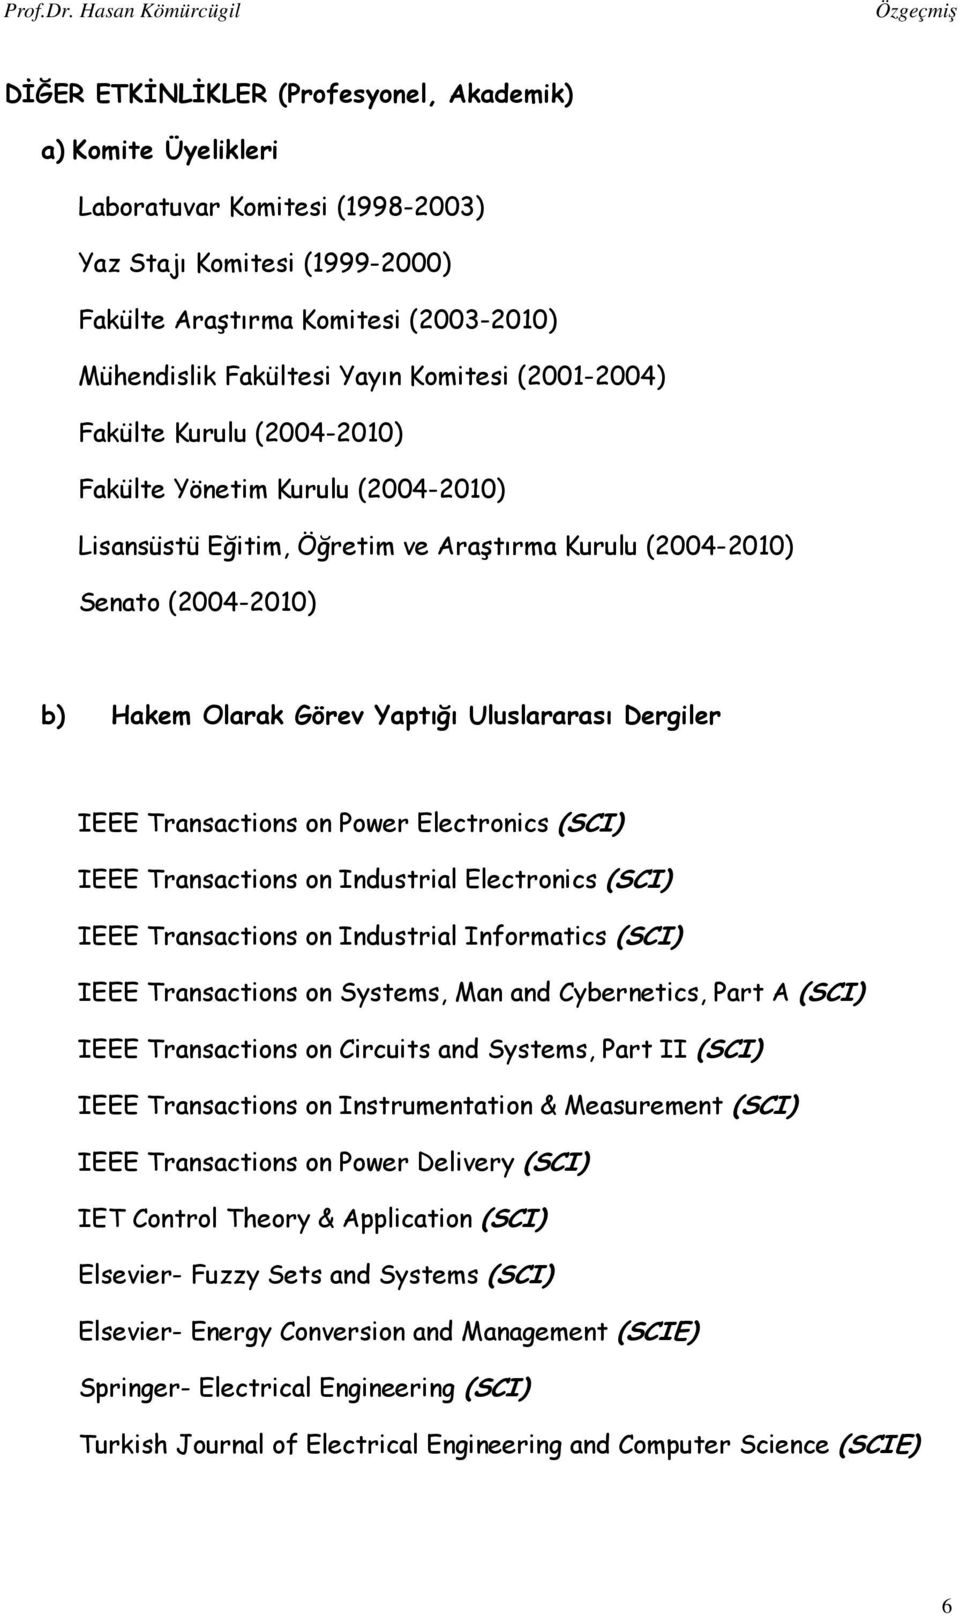 Uluslararası Dergiler IEEE Transactions on Power Electronics (SCI) IEEE Transactions on Industrial Electronics (SCI) IEEE Transactions on Industrial Informatics (SCI) IEEE Transactions on Systems,